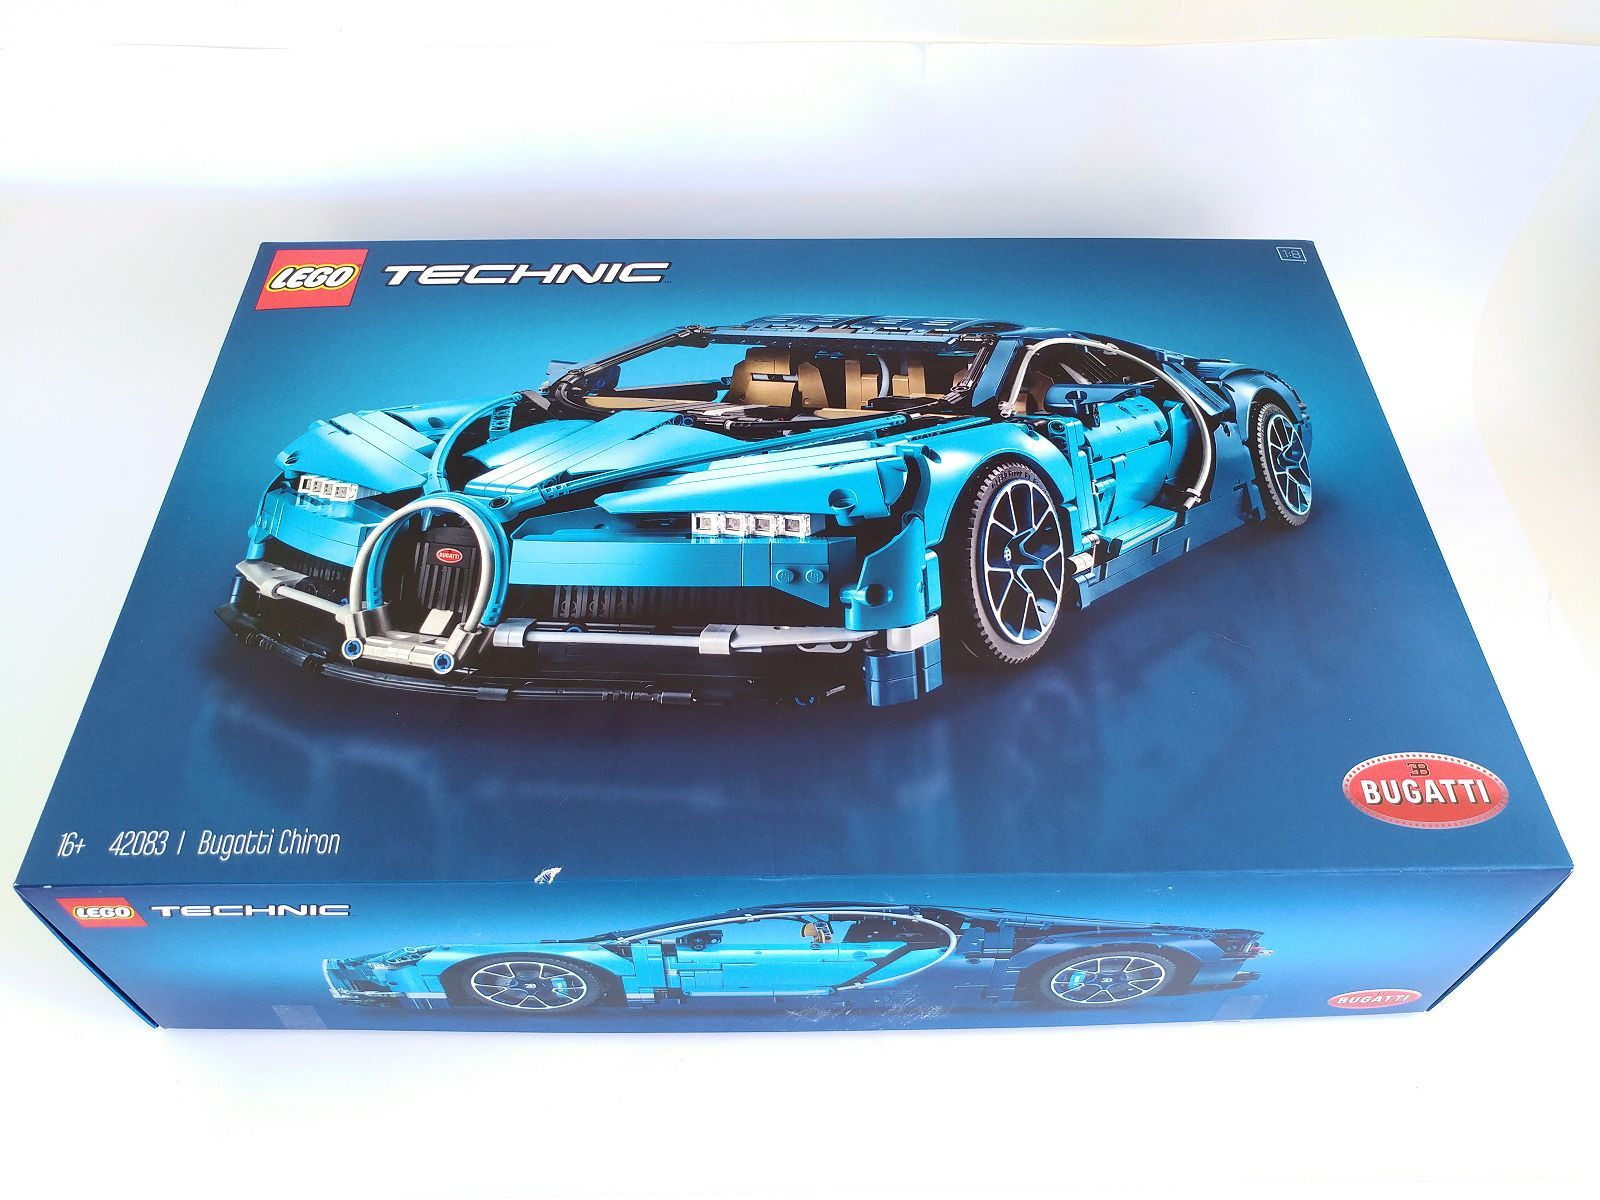 The Front Just Shows Lego Technic And Bugatti Logos Set S Number Description Recommended Age Finished Model On A Simple Blue